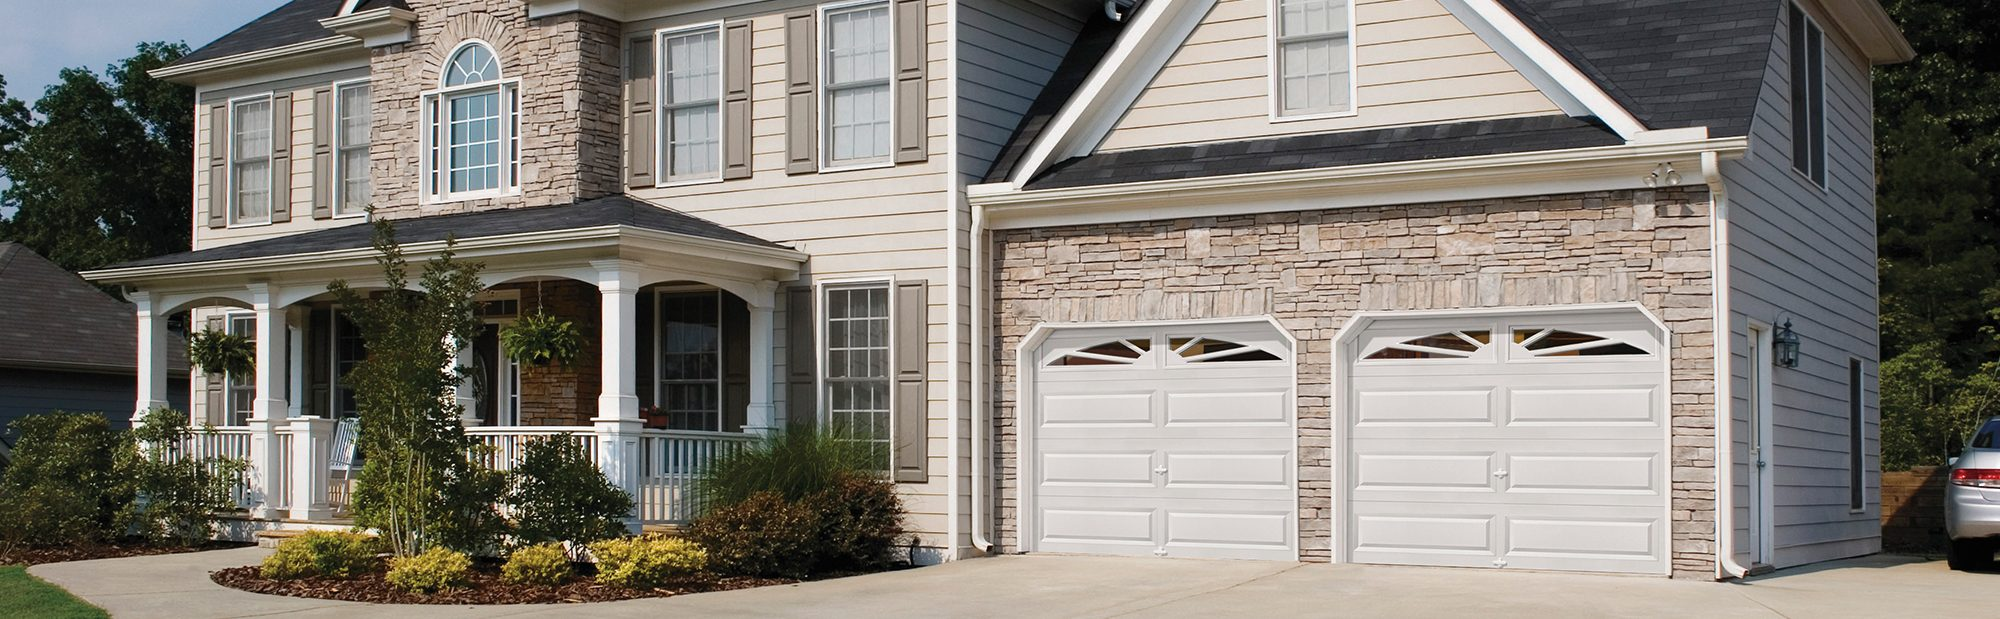 GARAGE DOORS IN GREATER SEATTLE AREA